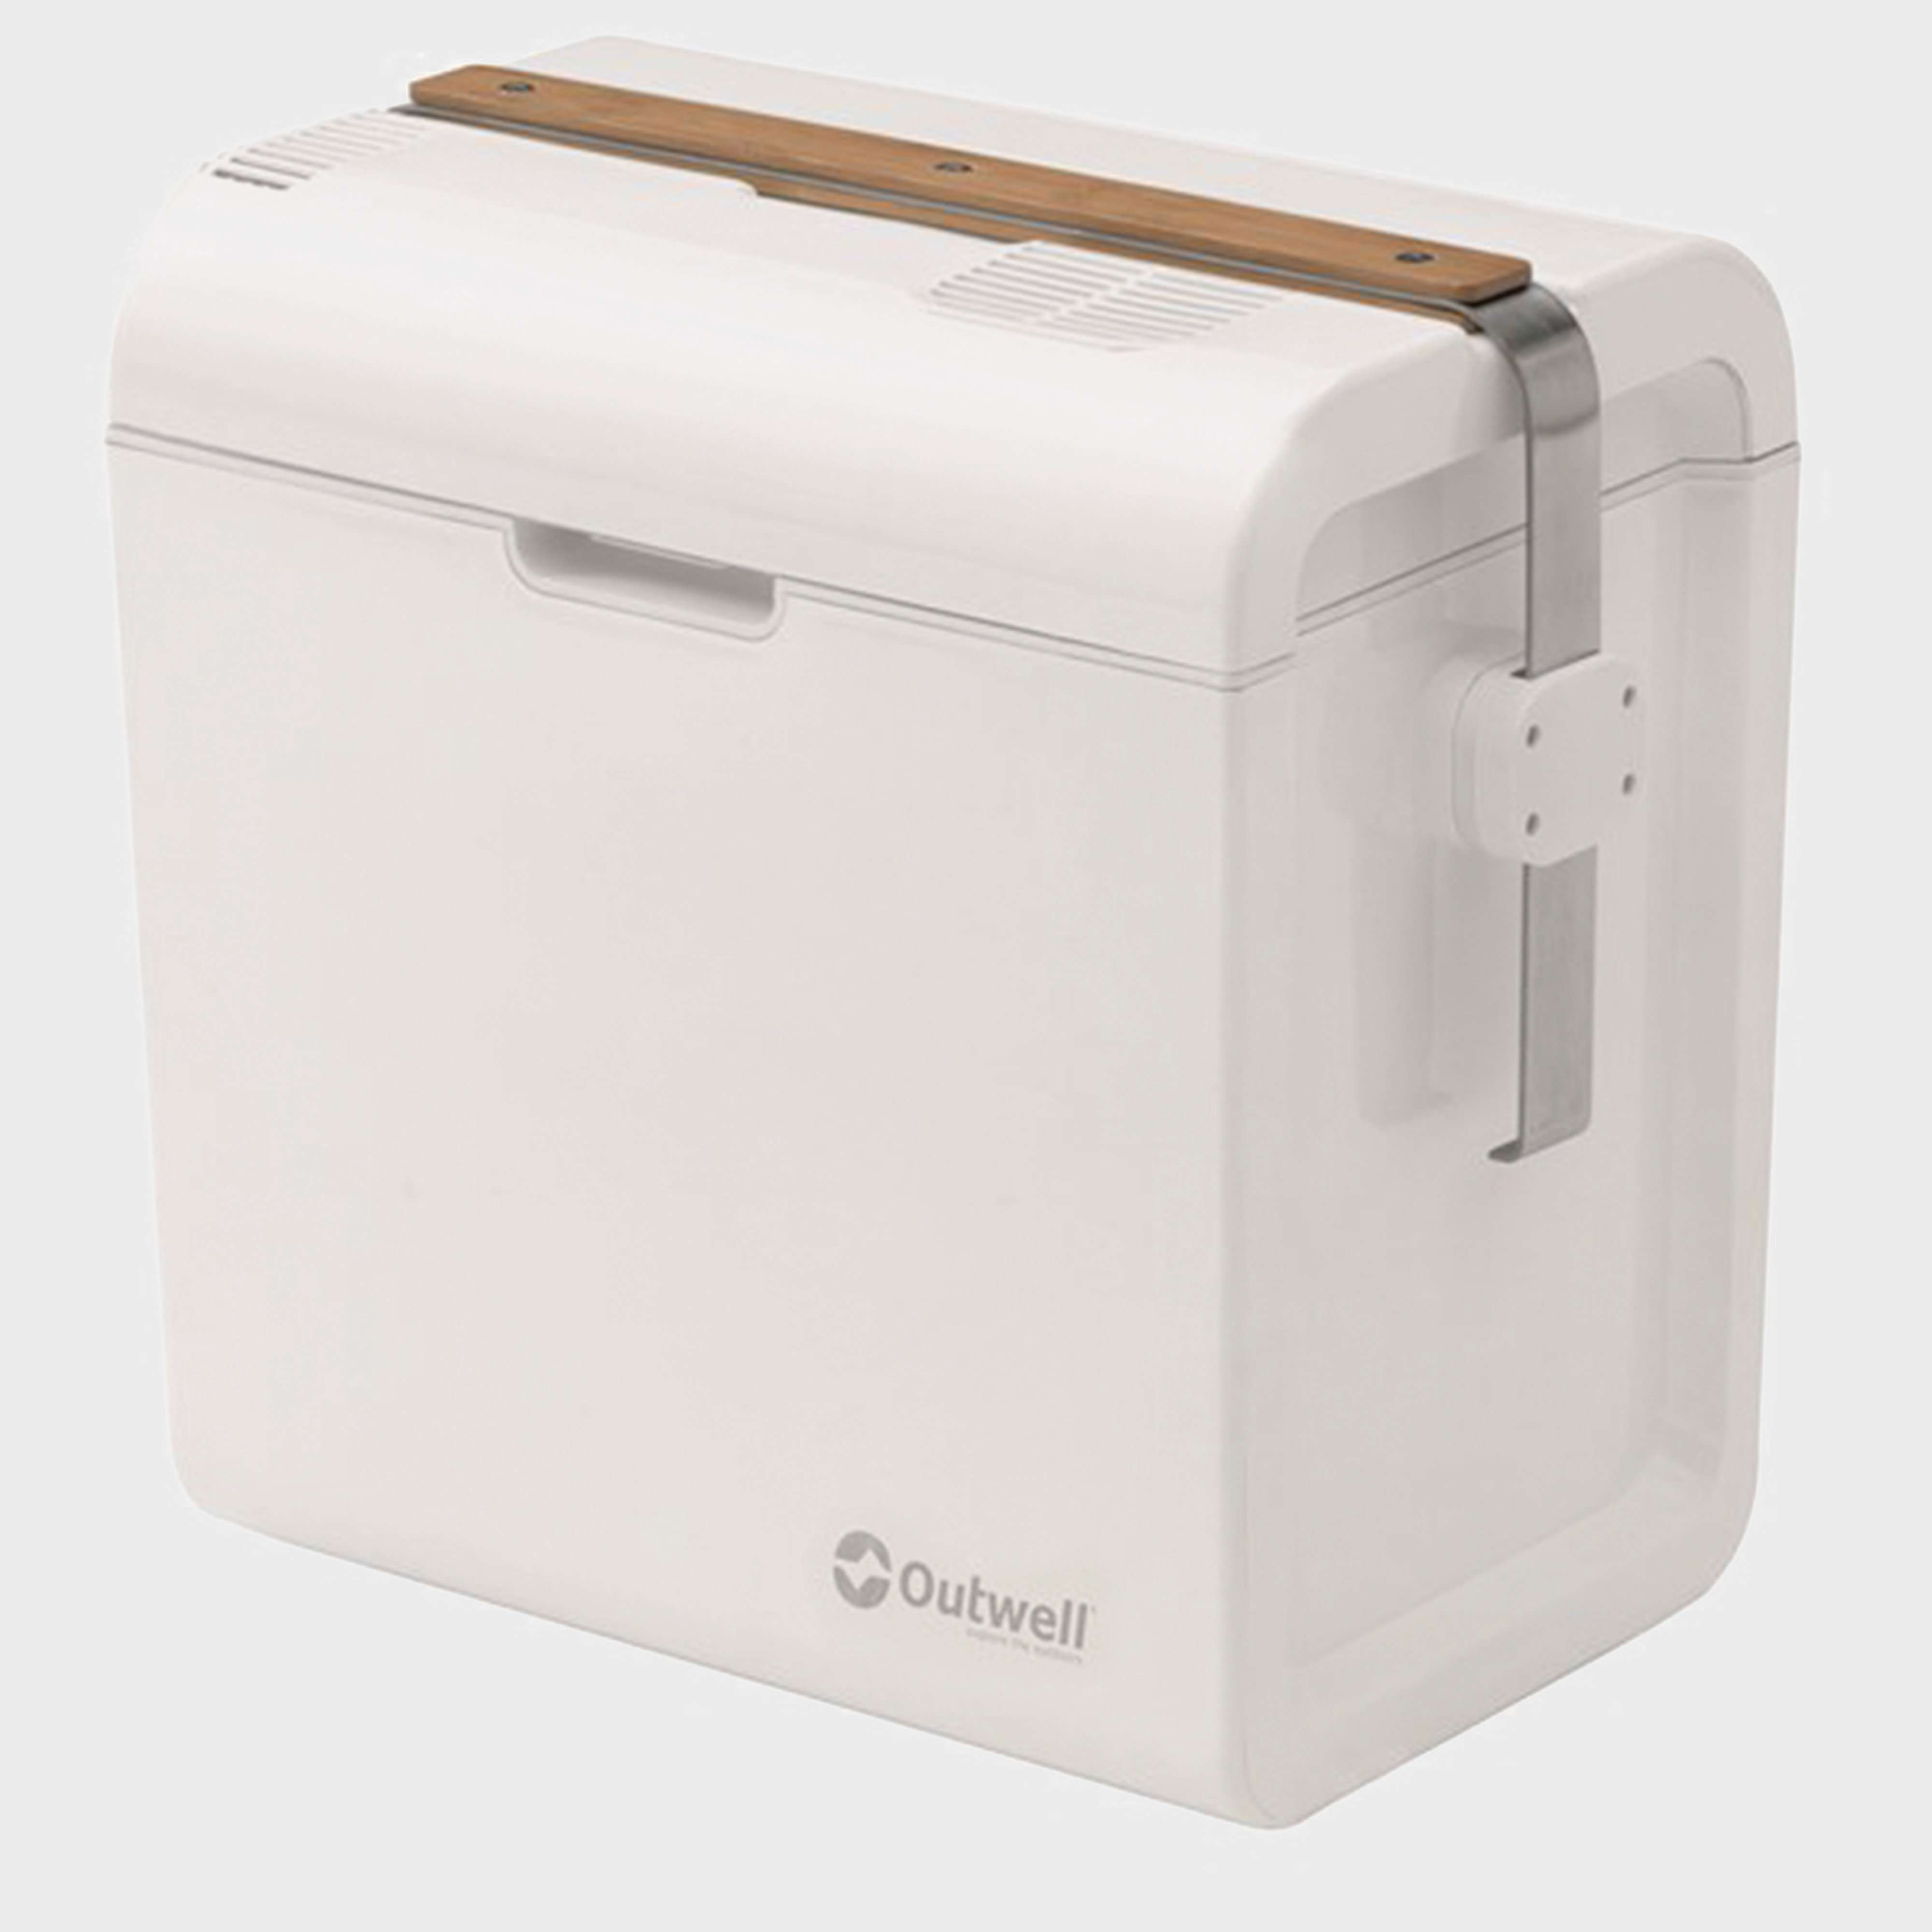 OUTWELL ECOlux 24L Cool Box